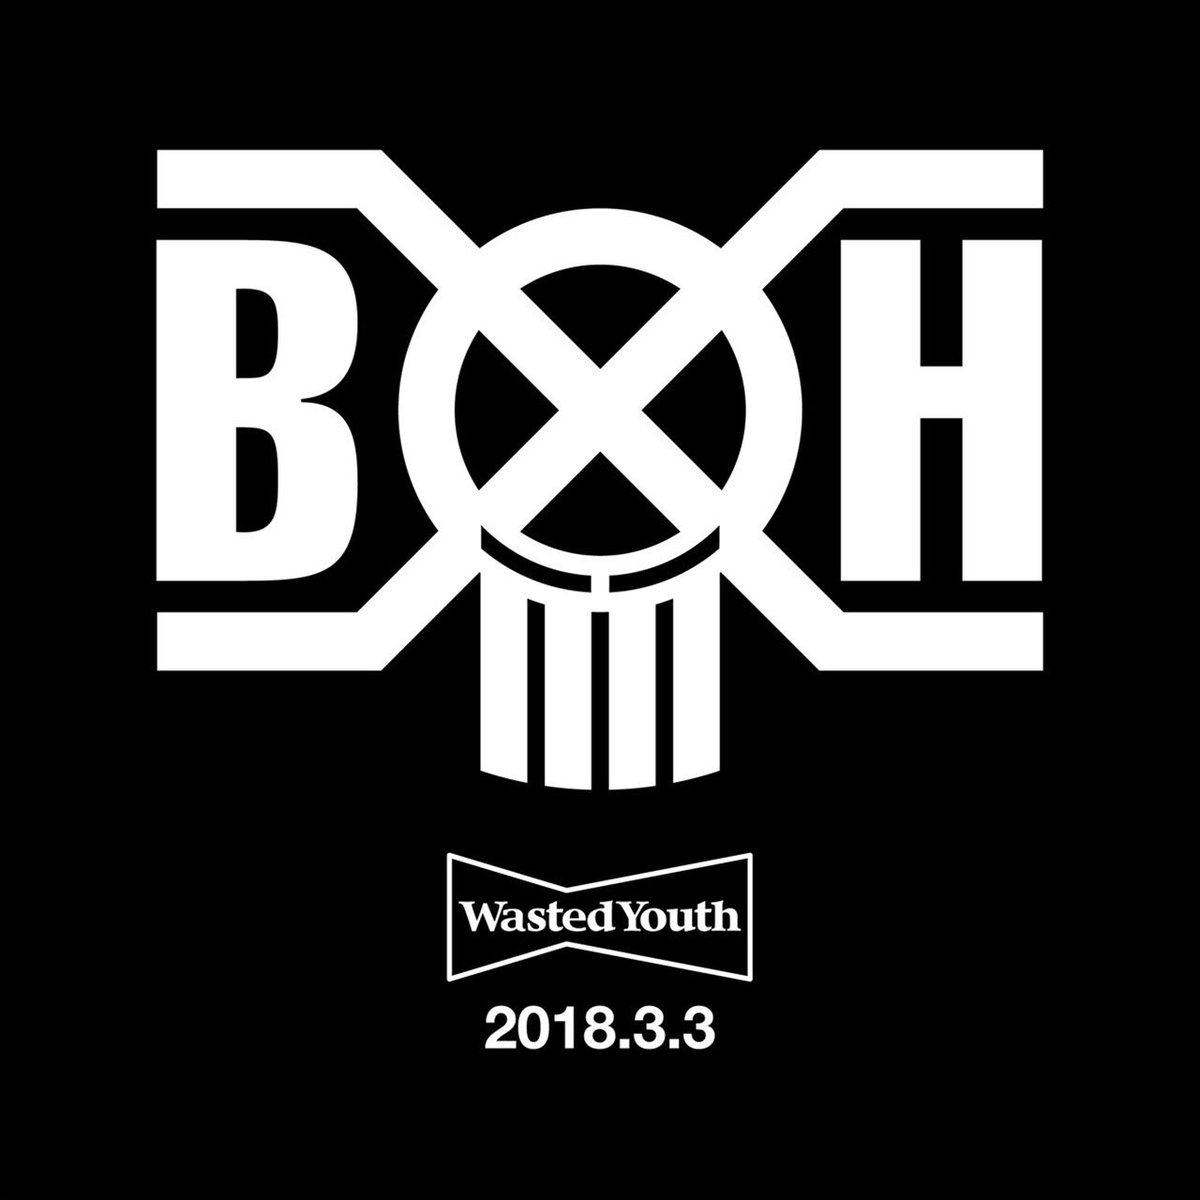 Bounty hunter bxhofficial twitter wasted youthpop up store1 bounty hunter tokyo bounty hunter tokyo 3 15 8 12002000 tel03 3746 1044 bxh buycottarizona Image collections